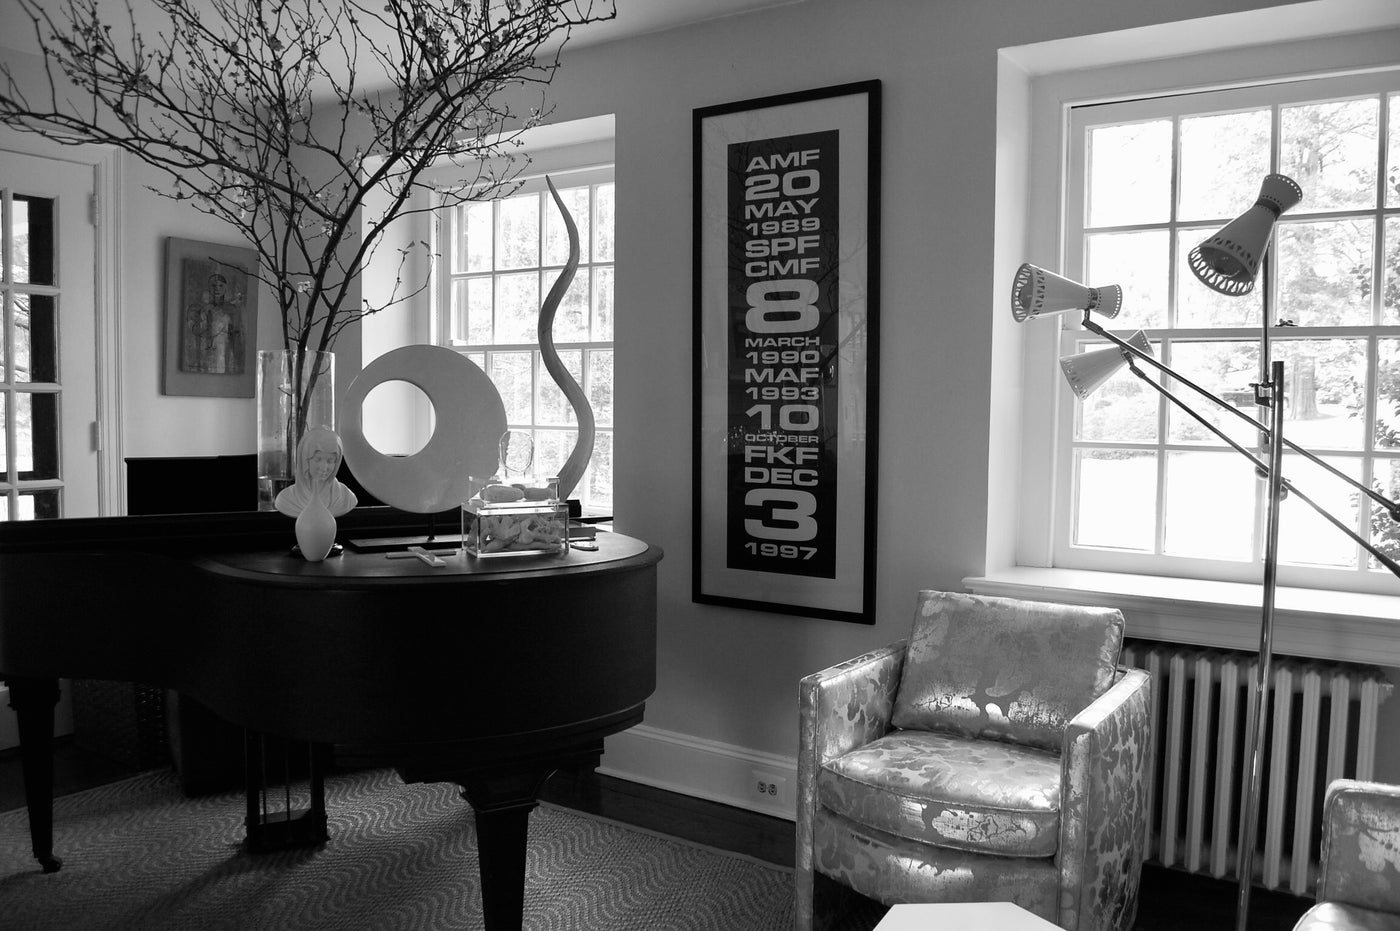 Lifestyle shot of large custom sign in living room